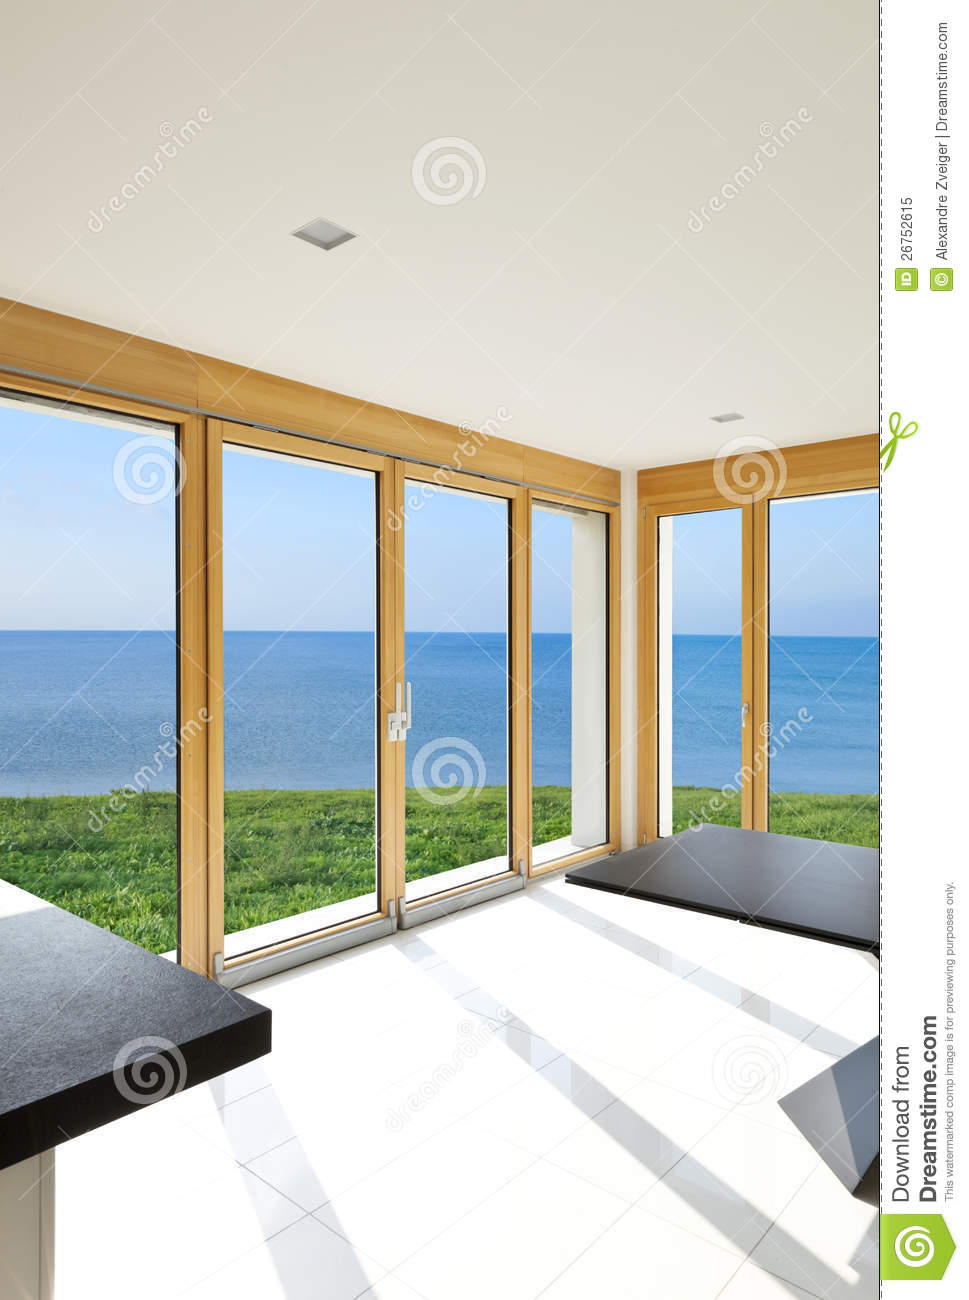 Interior panoramic windows royalty free stock photo - One time interior house cleaning ...